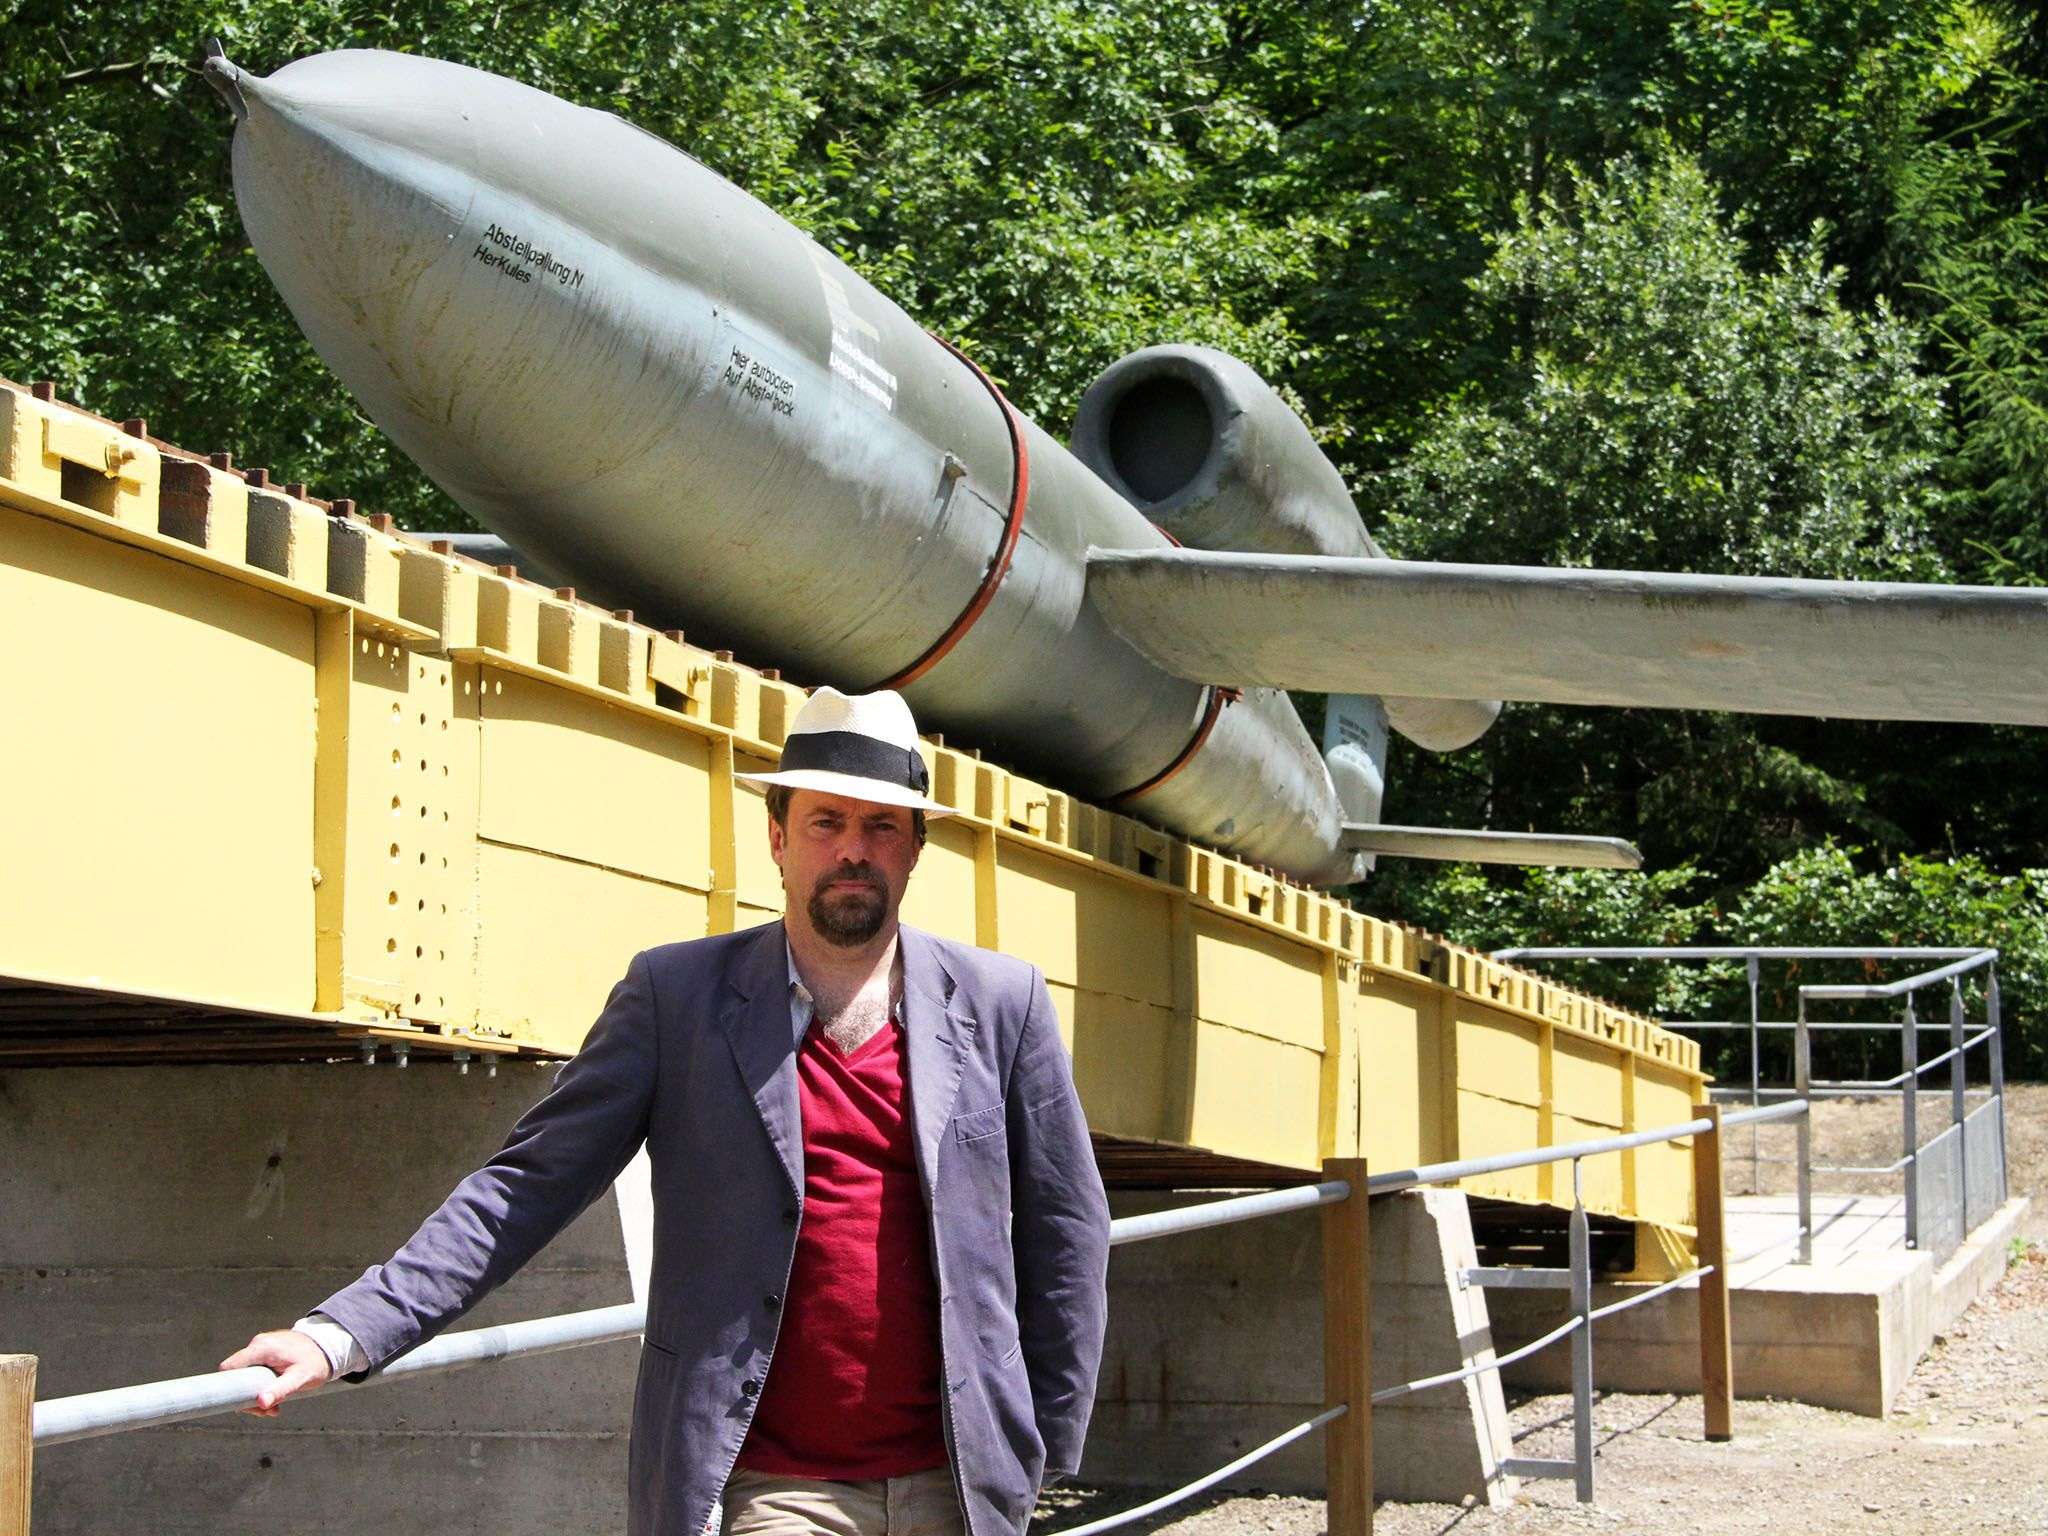 Battlefield archaeologist, Tony Pollard, in front of the first Vengeance weapon the V-1 flying... [Photo of the day - March 2016]